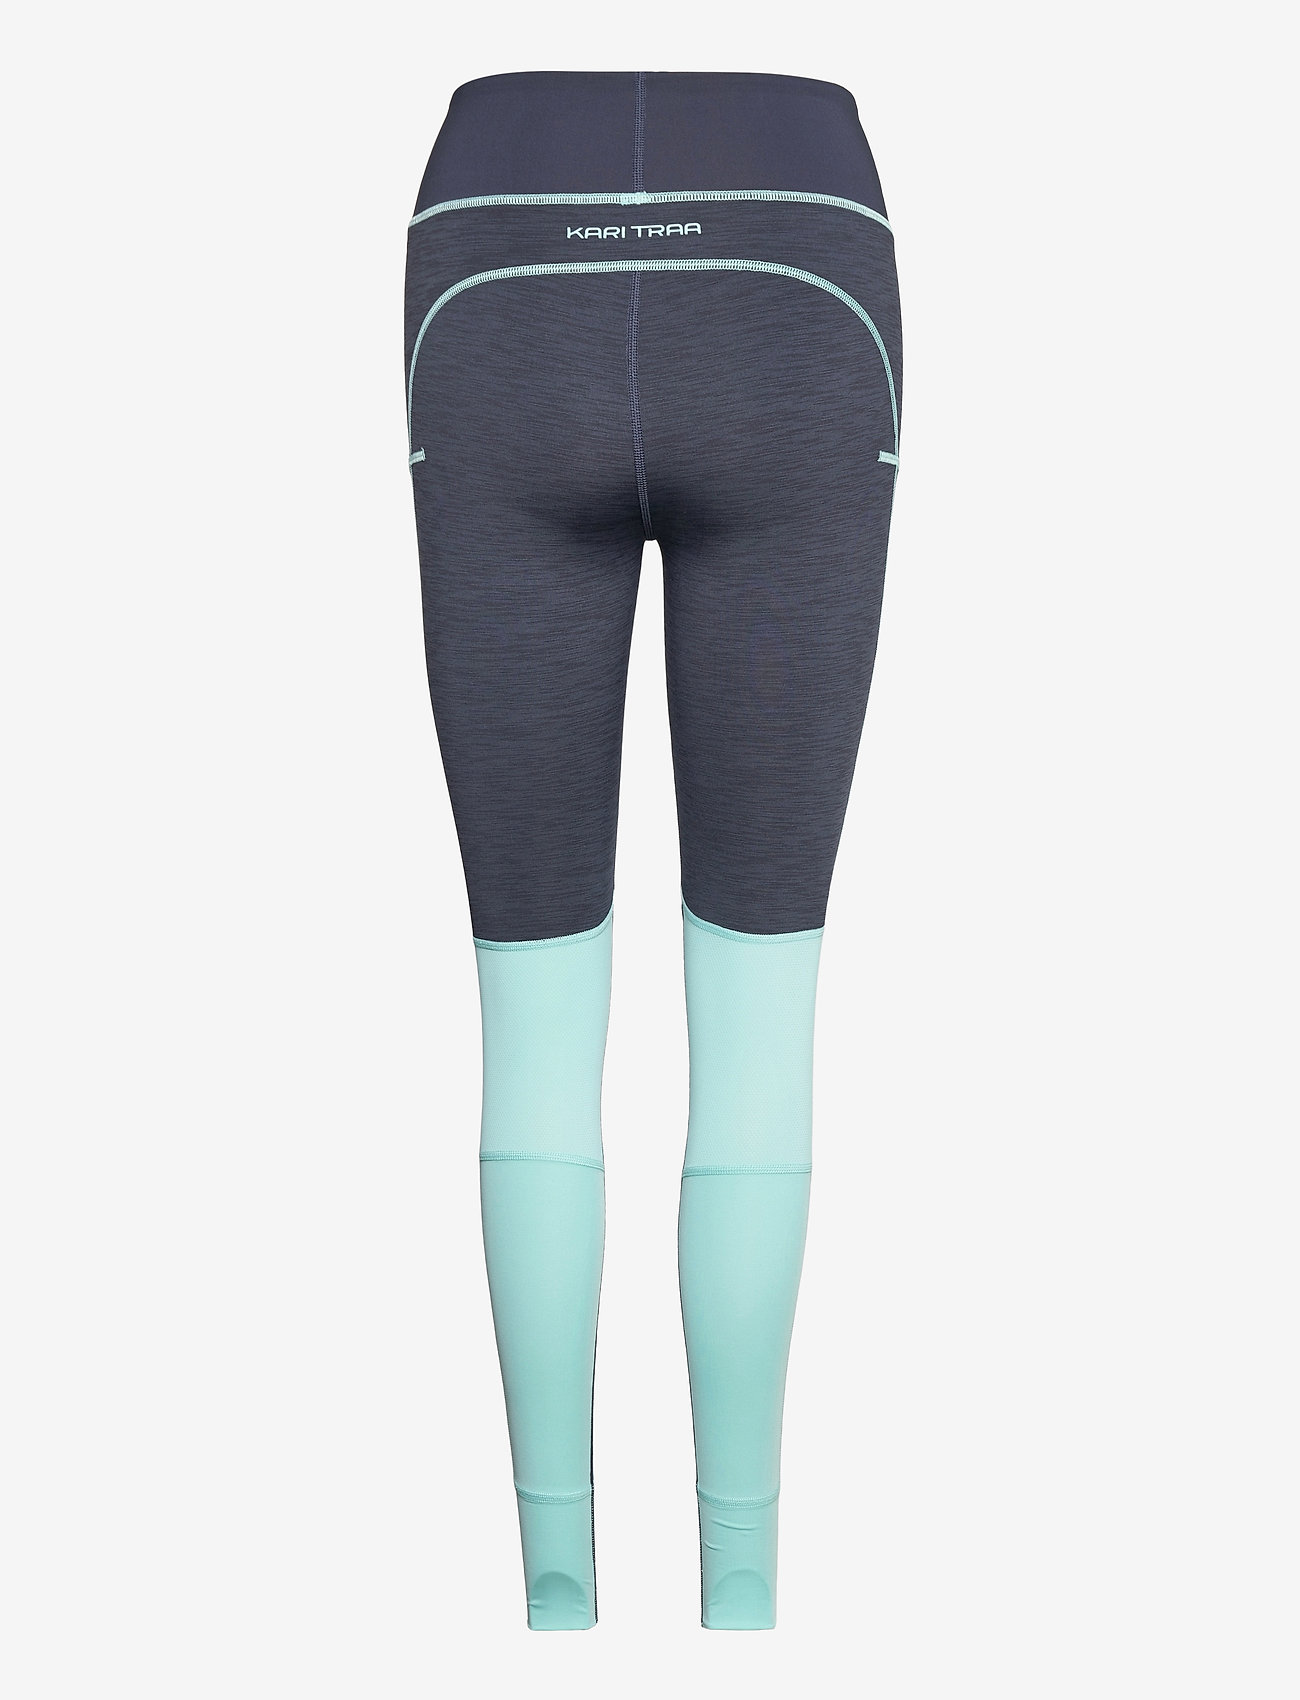 Kari Traa - STIL PANT - base layer bottoms - ocean - 1